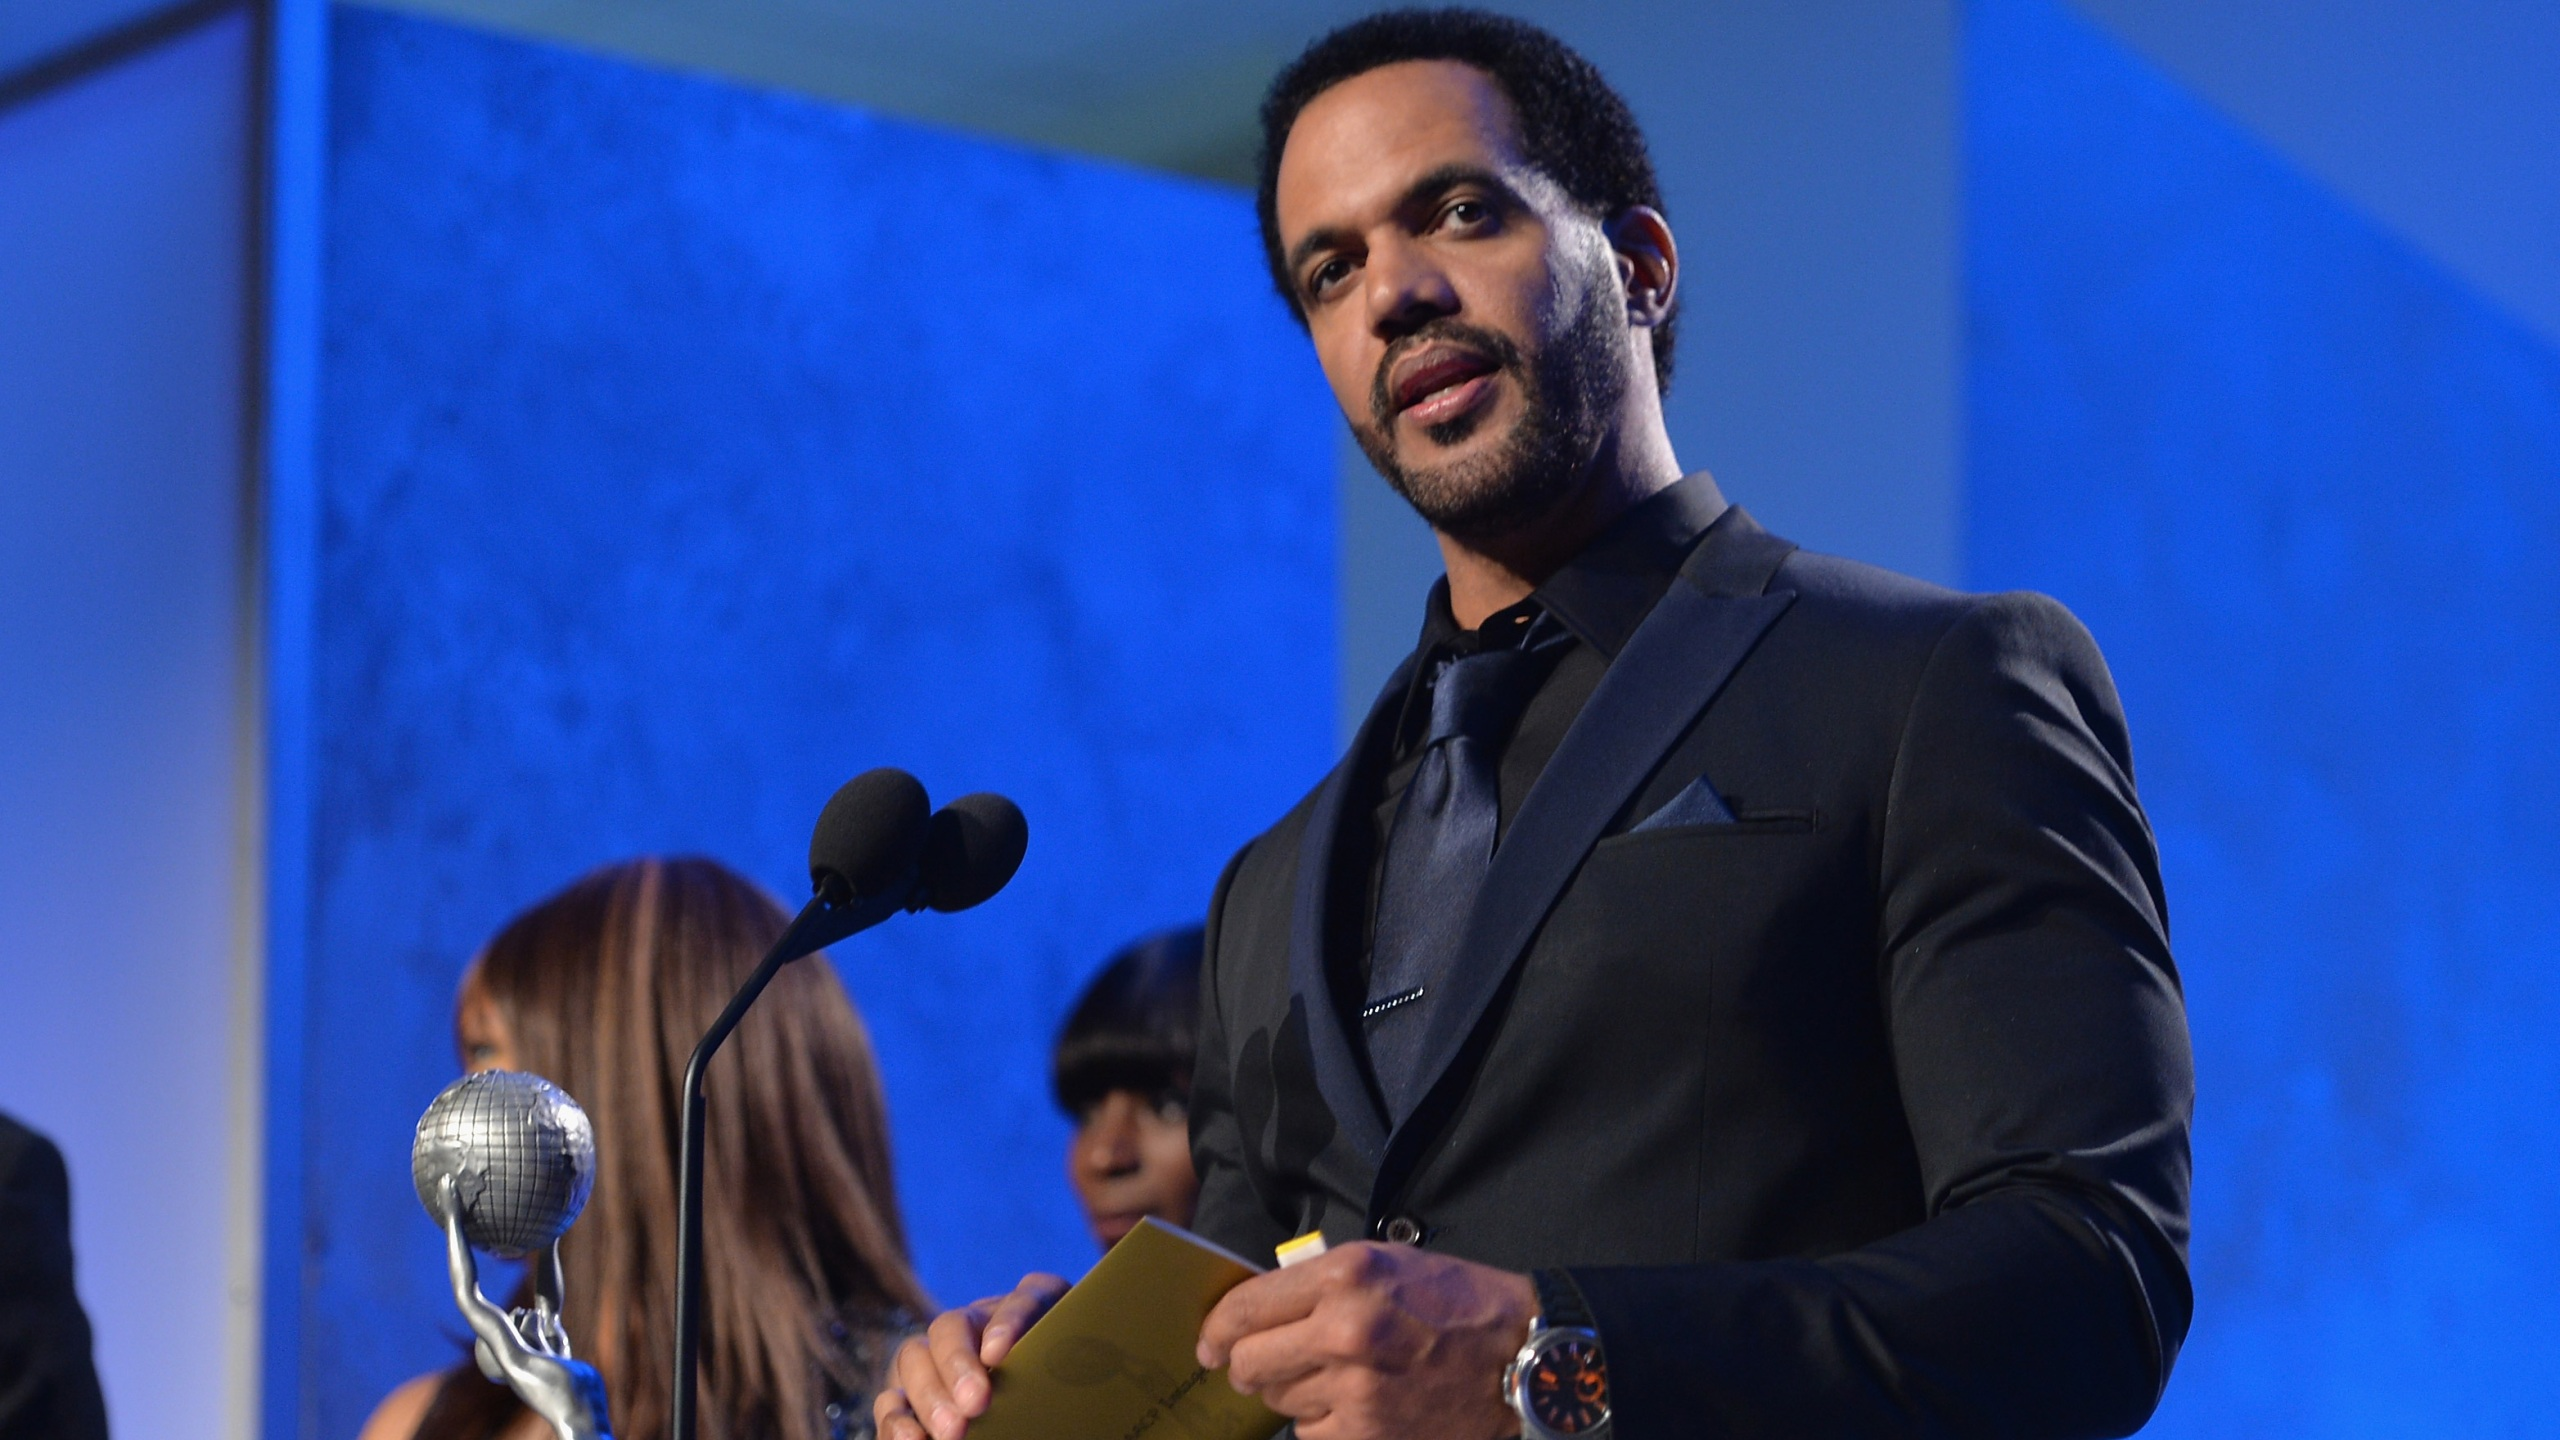 45th NAACP Image Awards Non-Televised Awards Ceremony.jpg